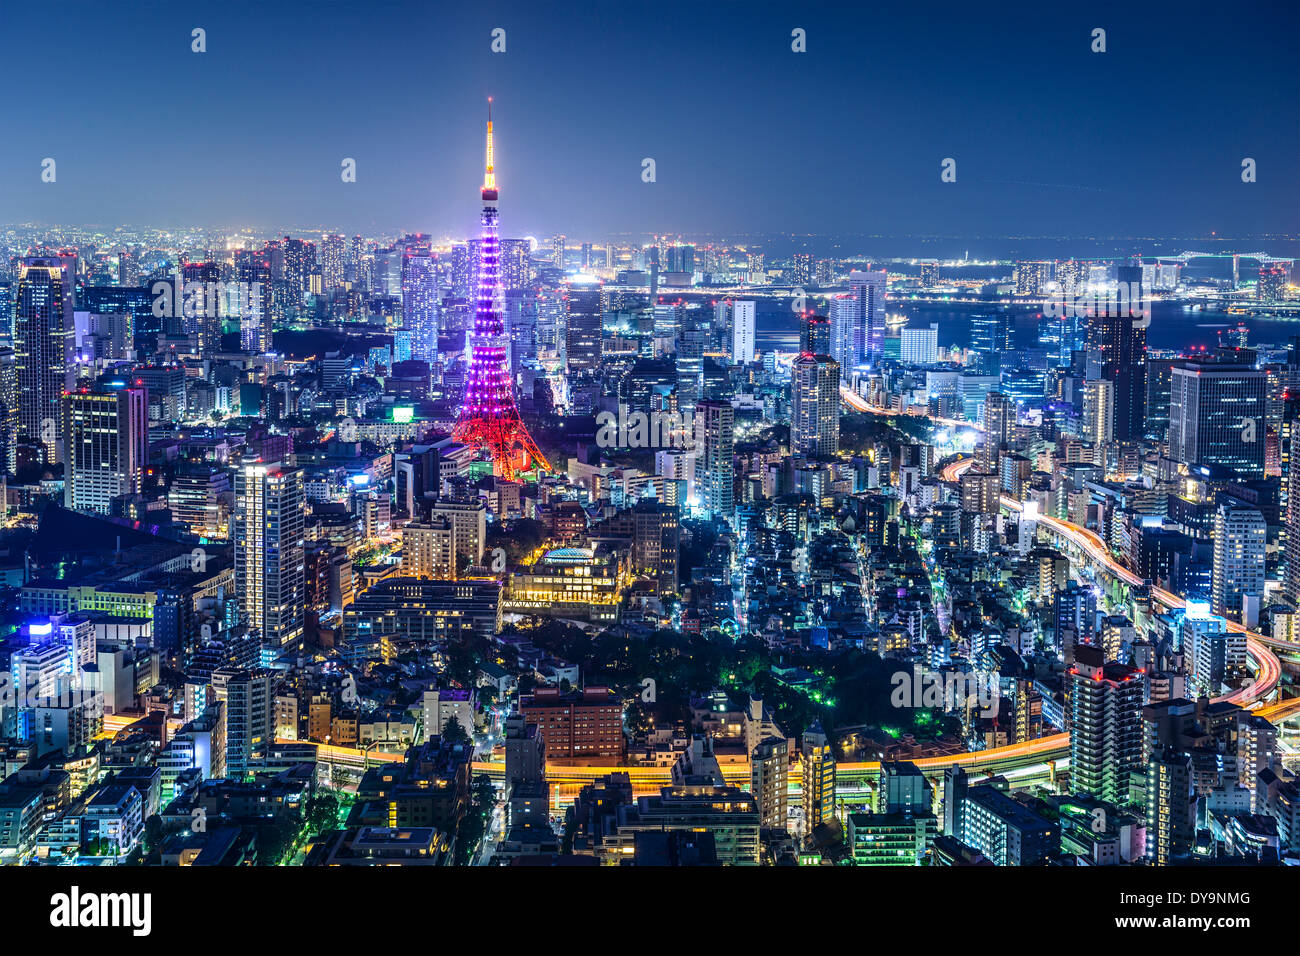 Tokyo Japan city skyline with Tokyo Tower  Diamond Veil  lighting & Tokyo Japan city skyline with Tokyo Tower